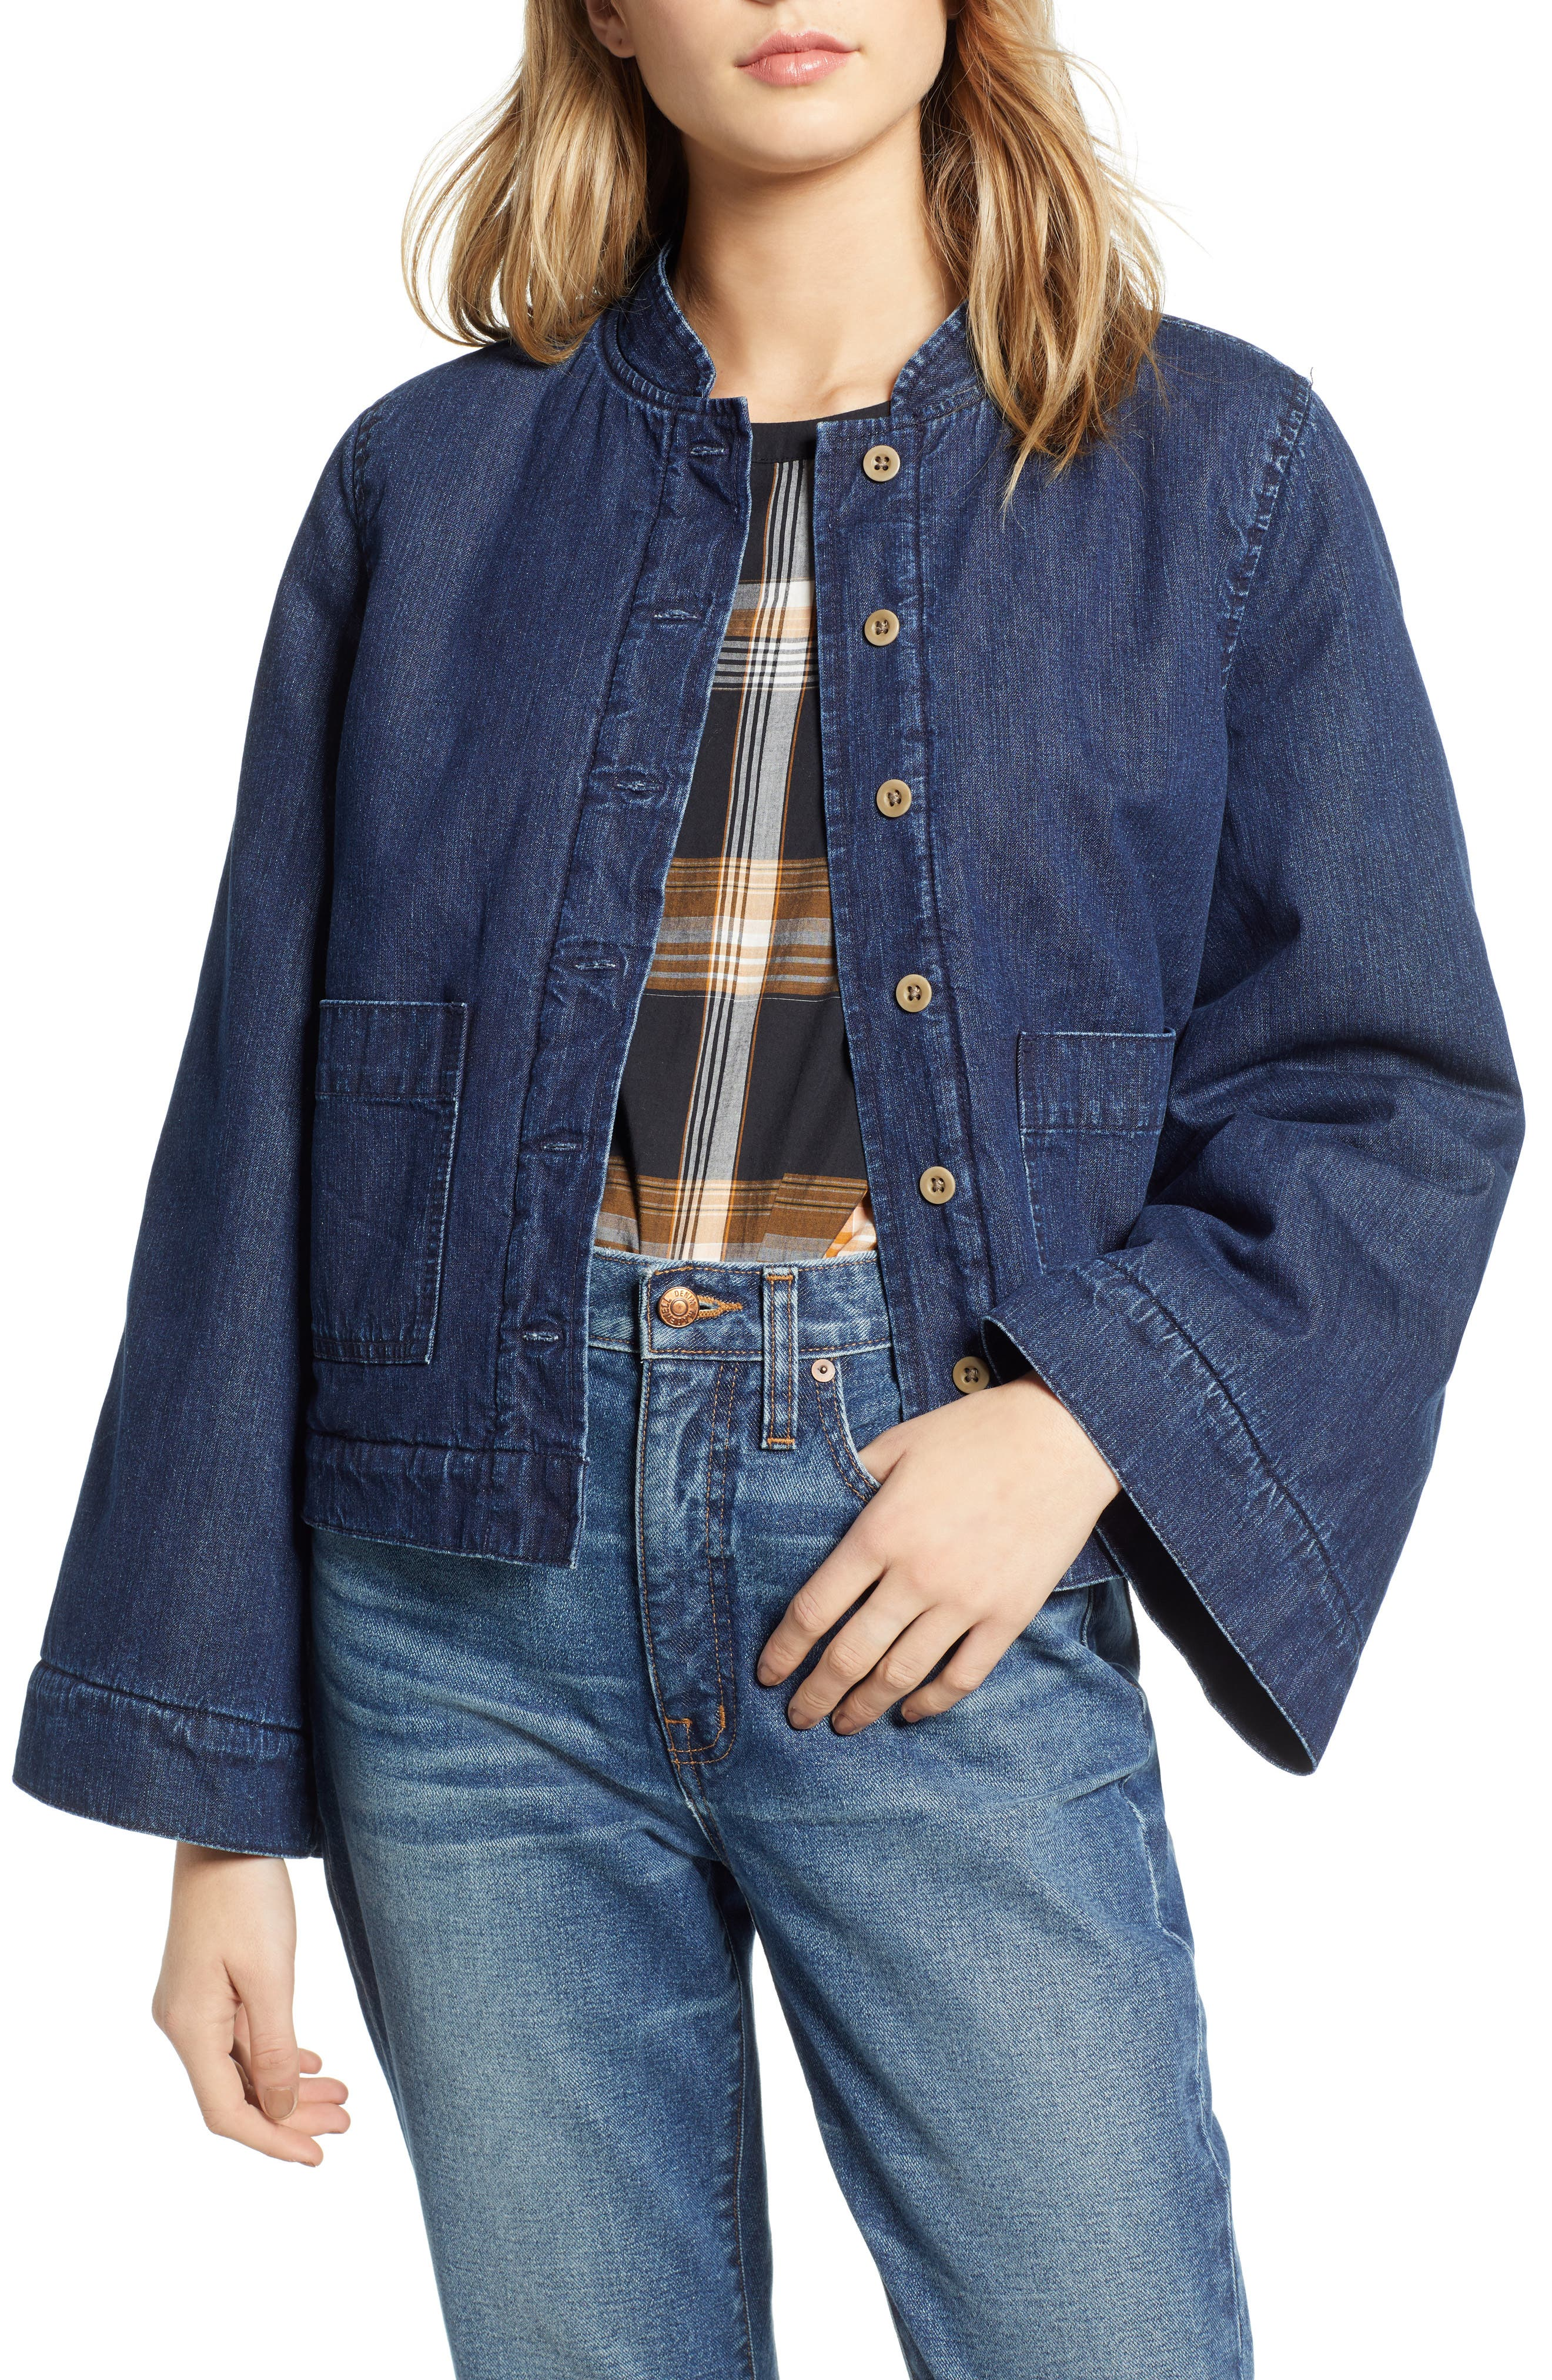 MADEWELL, Reversible Fleece Jean Jacket, Main thumbnail 1, color, 400